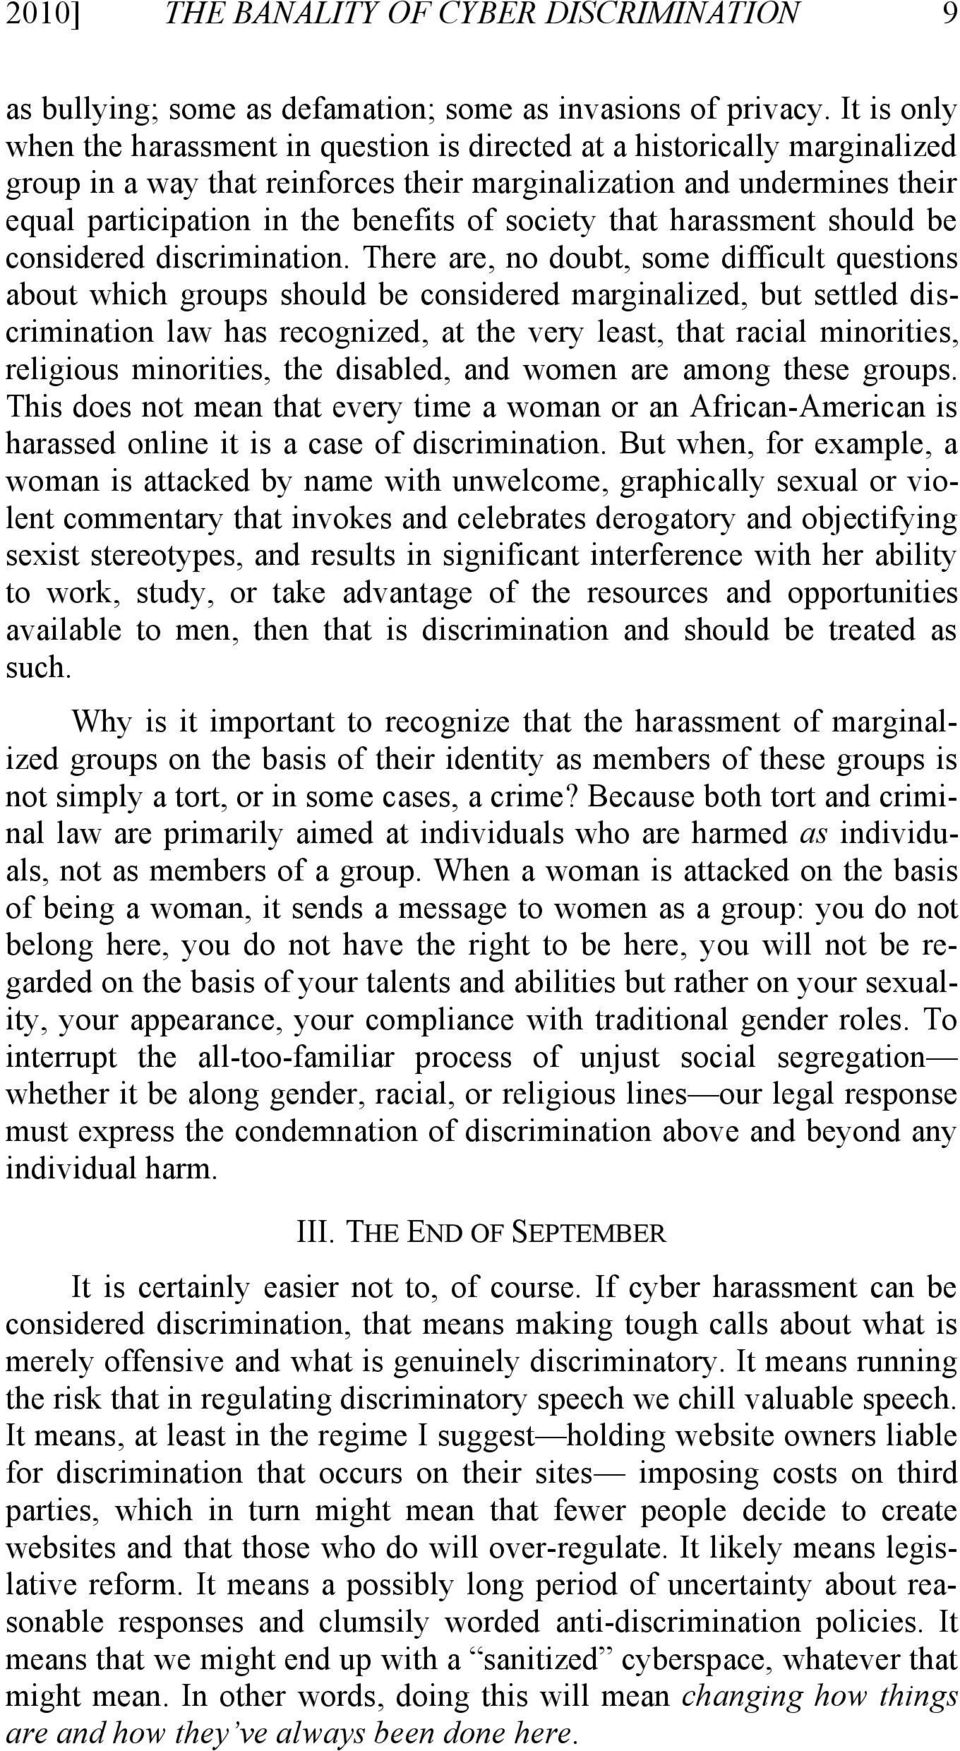 society that harassment should be considered discrimination.